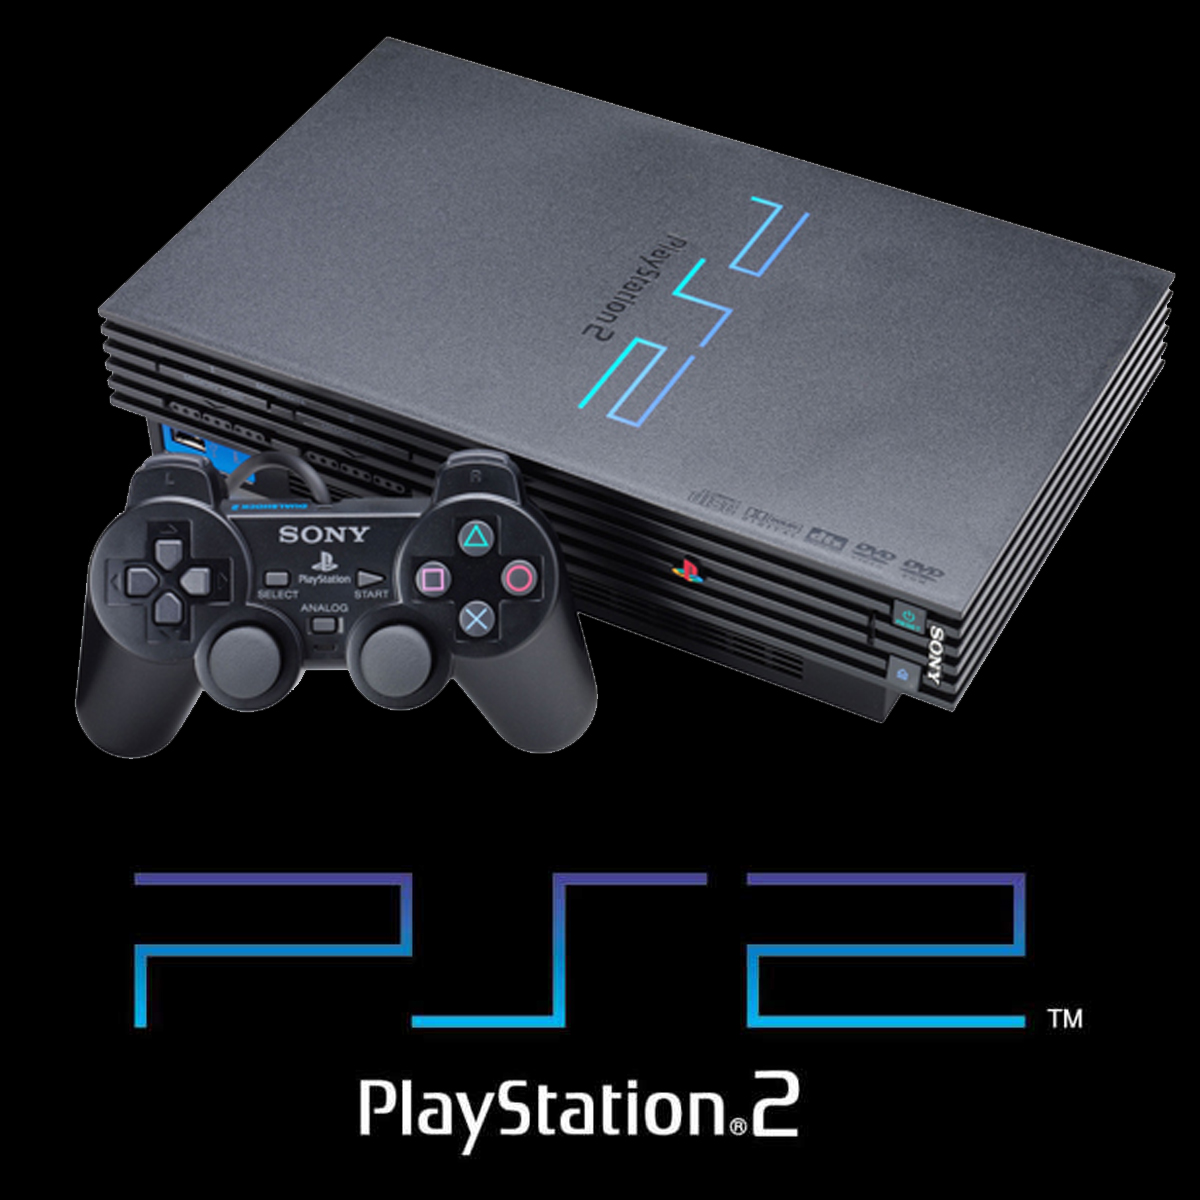 sony playstation 2 Sony's playstation 2 is one of the greatest video game consoles of all time not only has it built up a tremendous library of software over the years, but it's also sold more than 145 million units worldwide -- more than any other console to date.